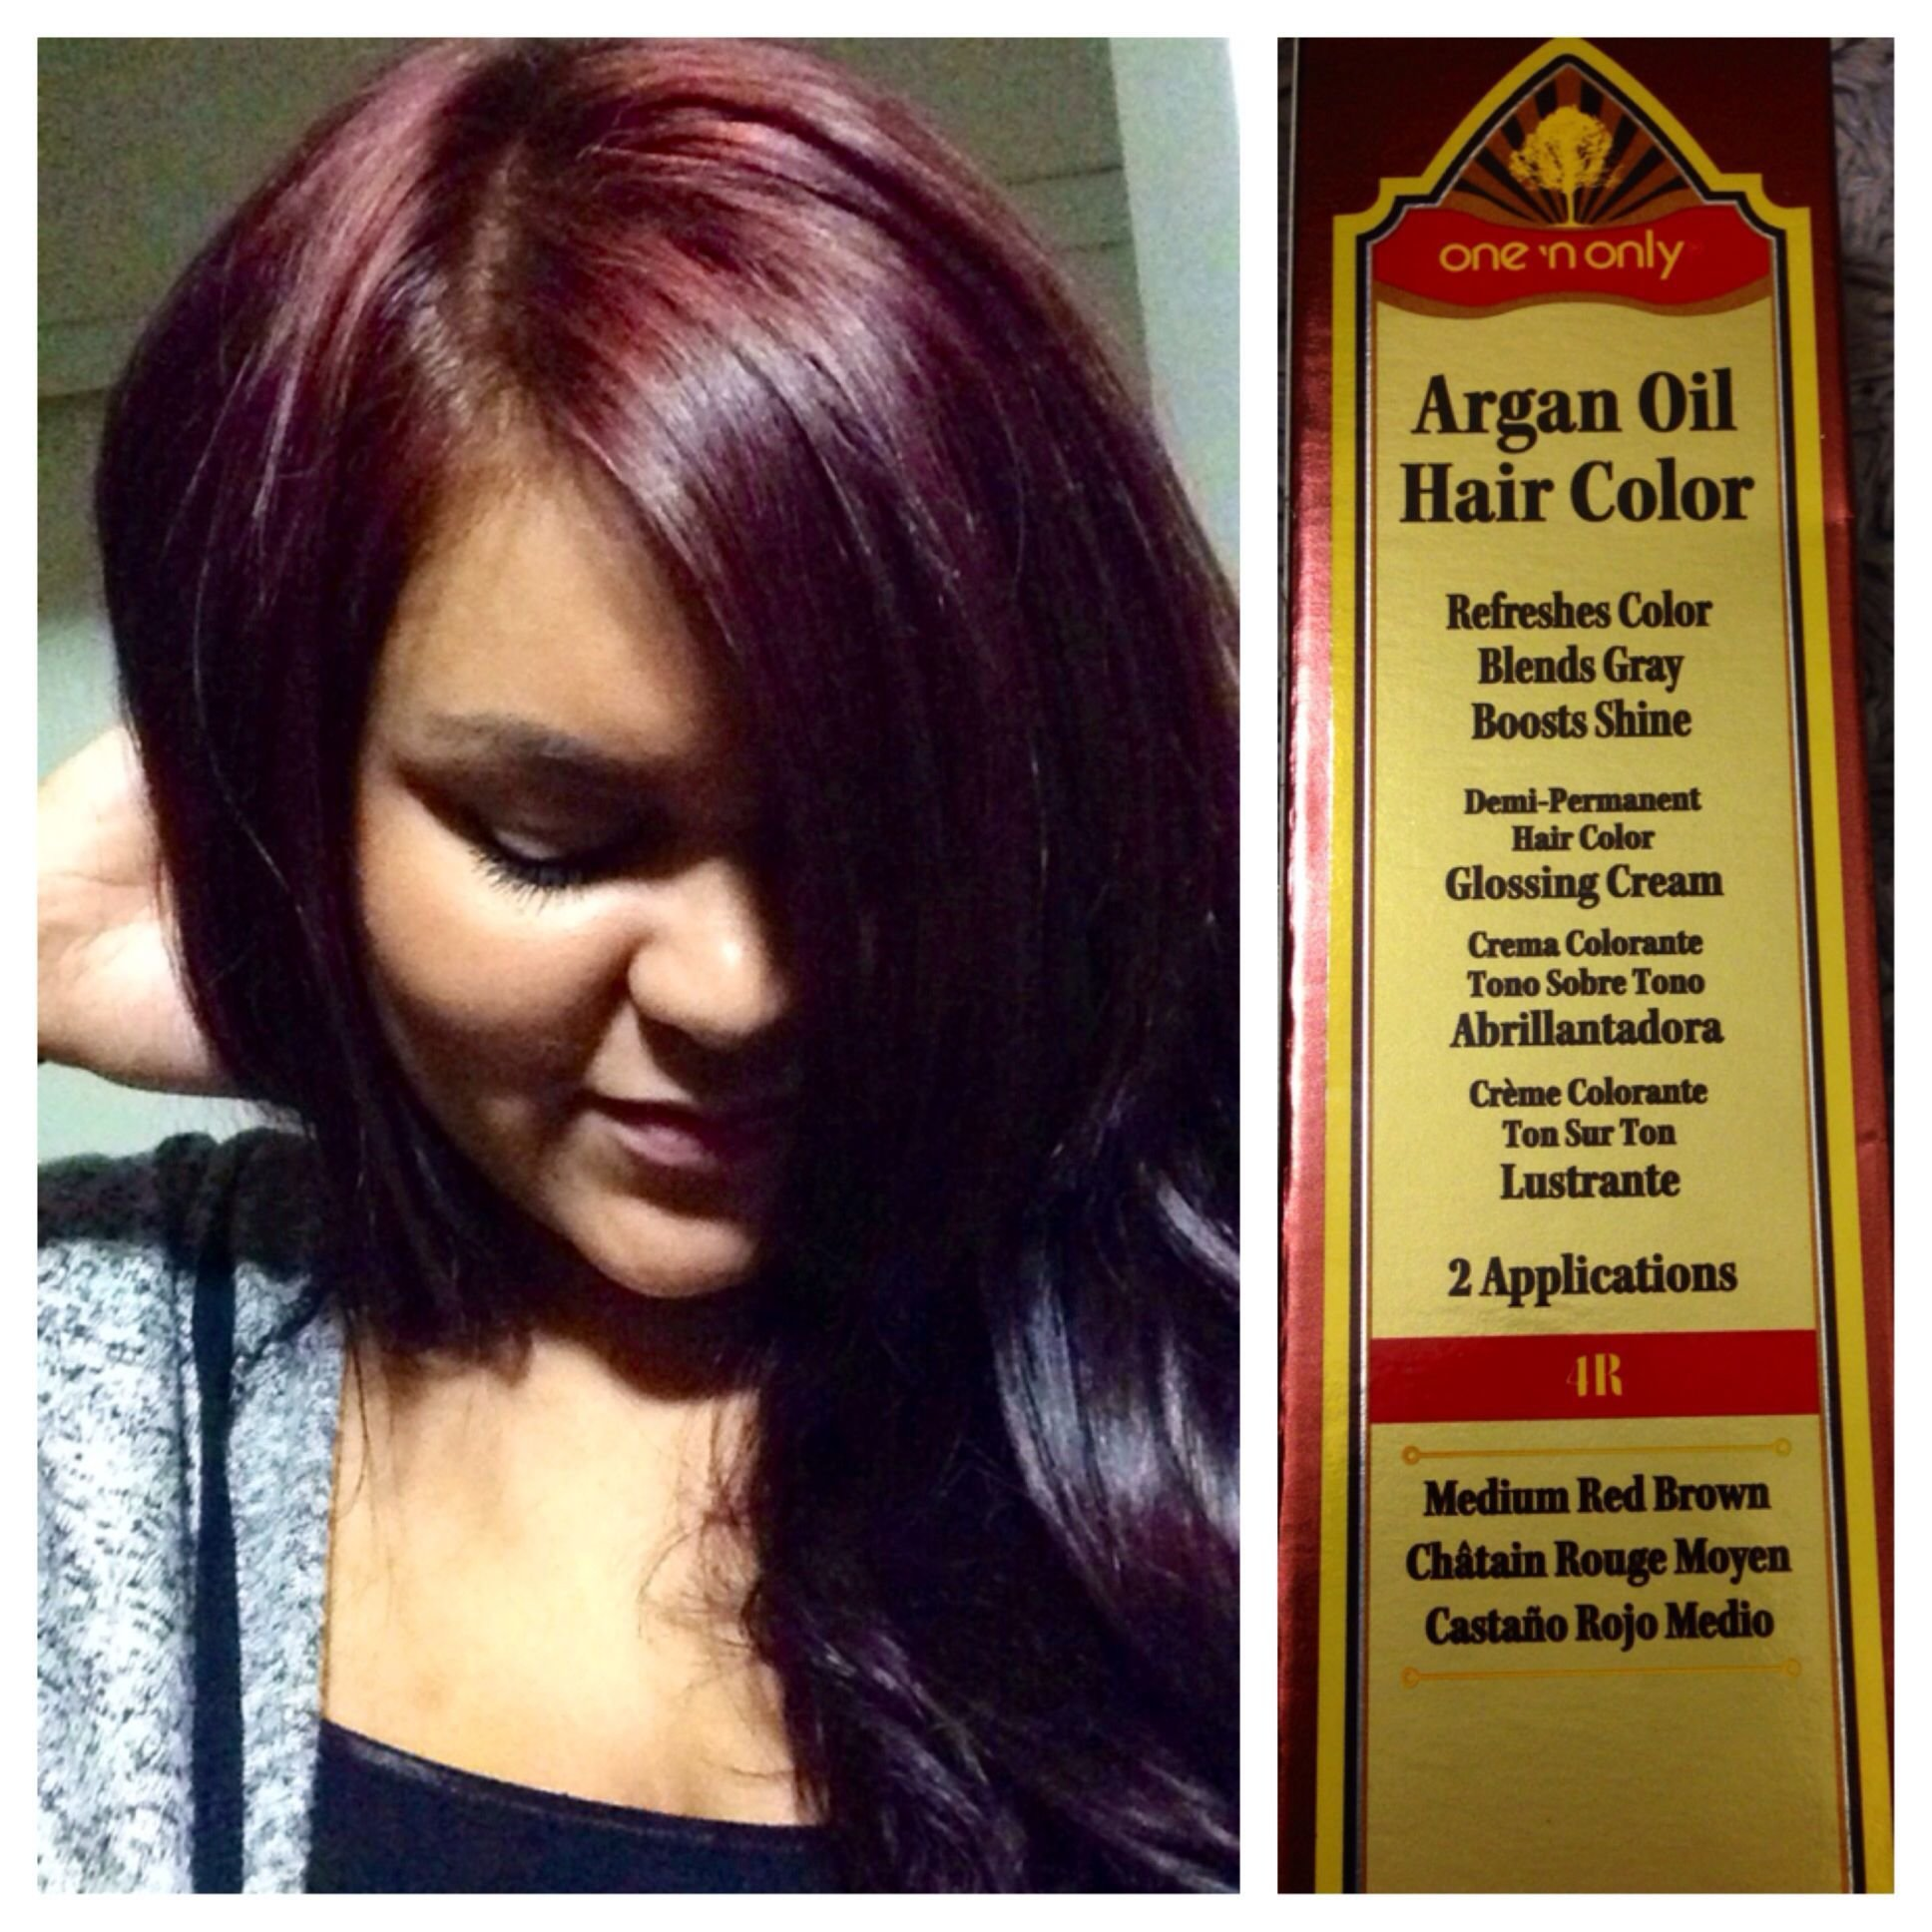 The Best Yay For Fall Hair Color One N Only Argan Oil Hair Pictures